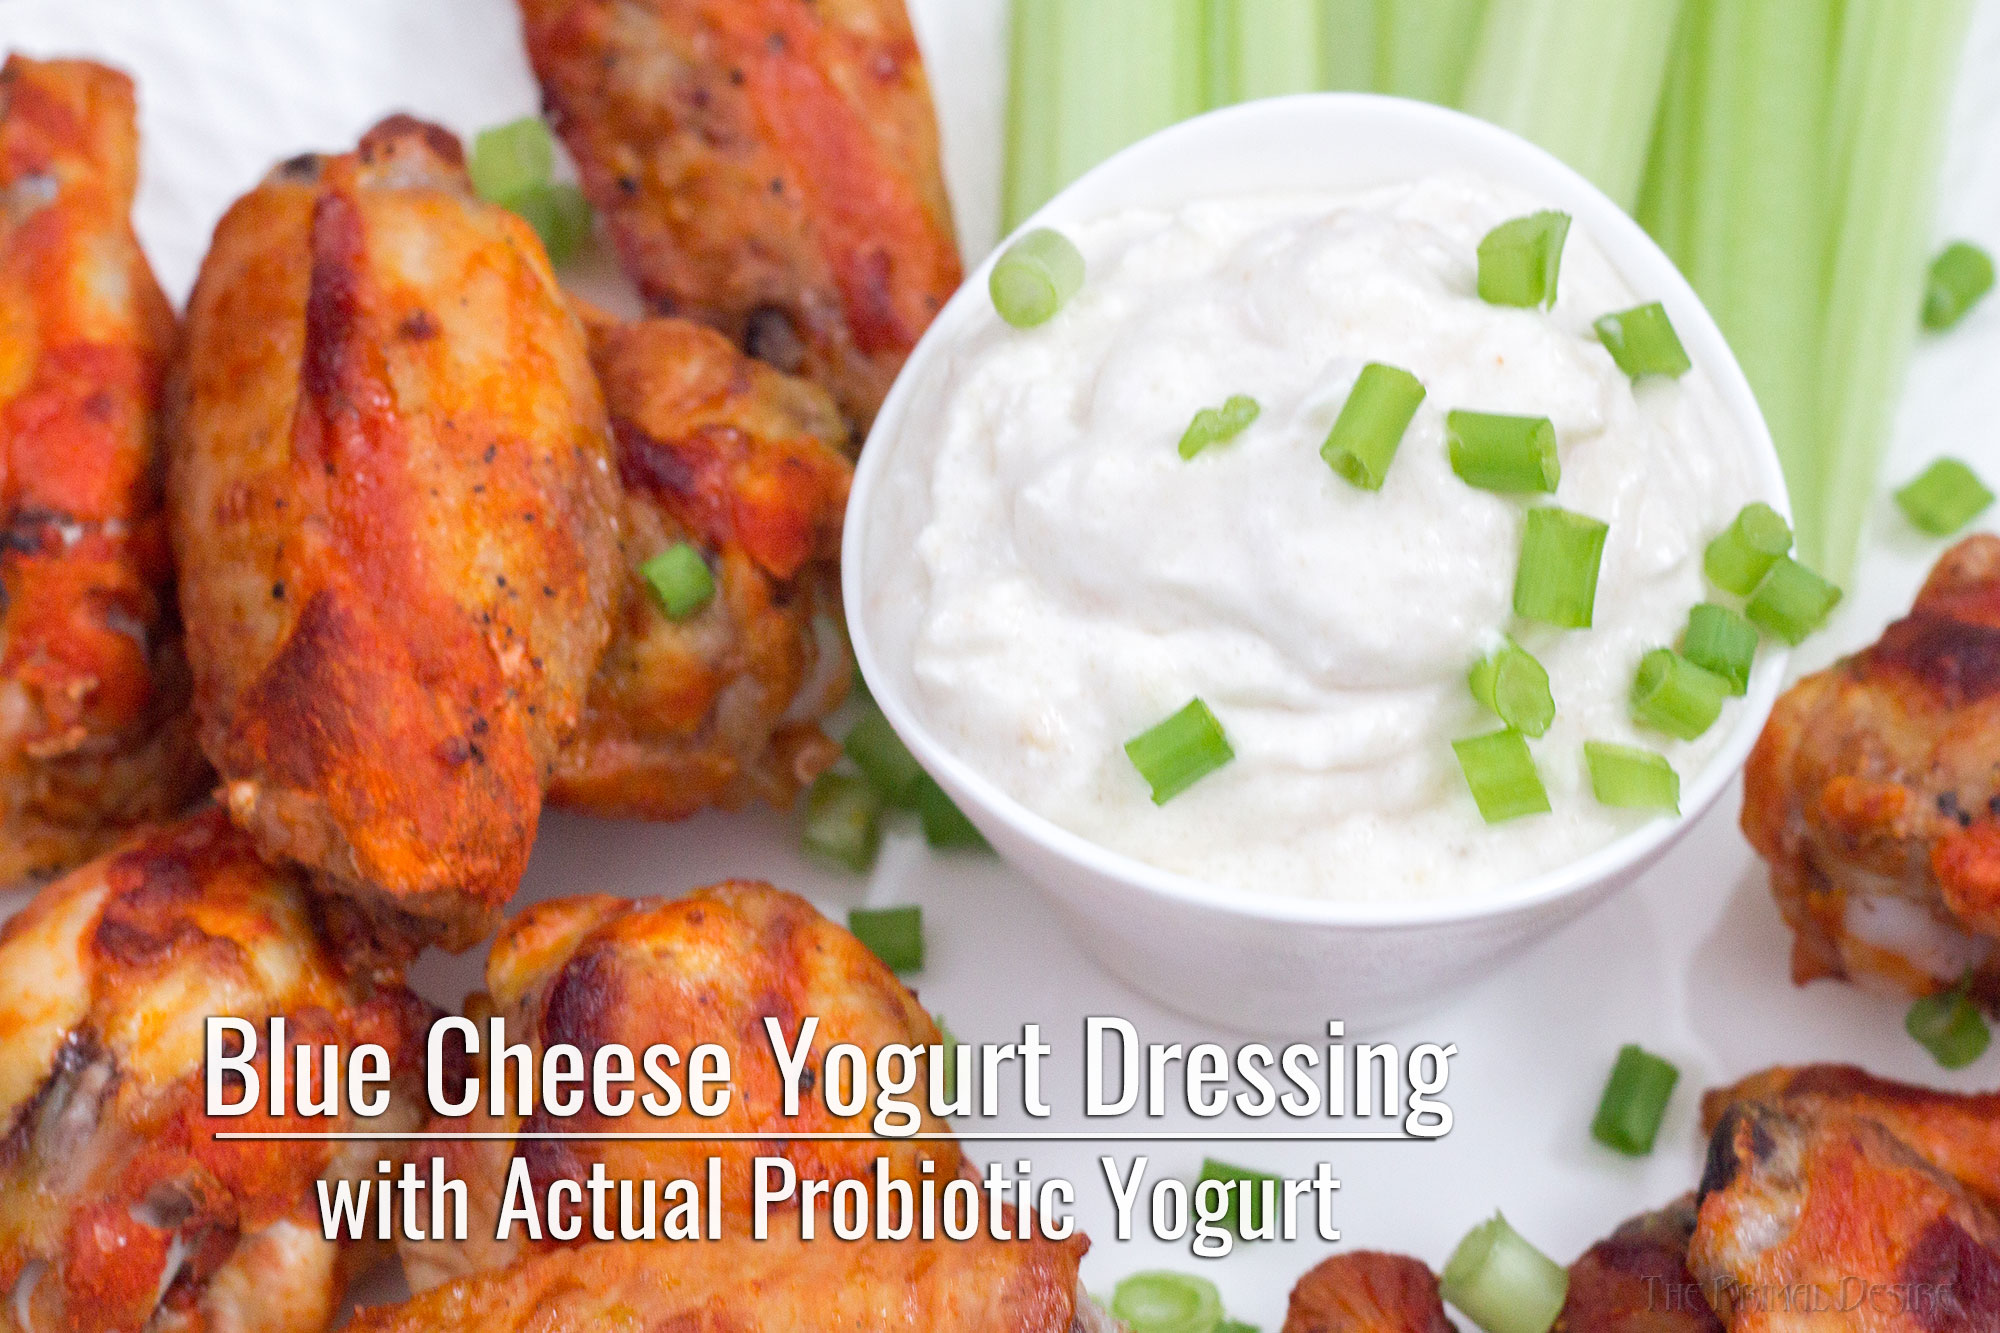 Blue Cheese Yogurt Dressing with Actual Probiotic Yogurt title